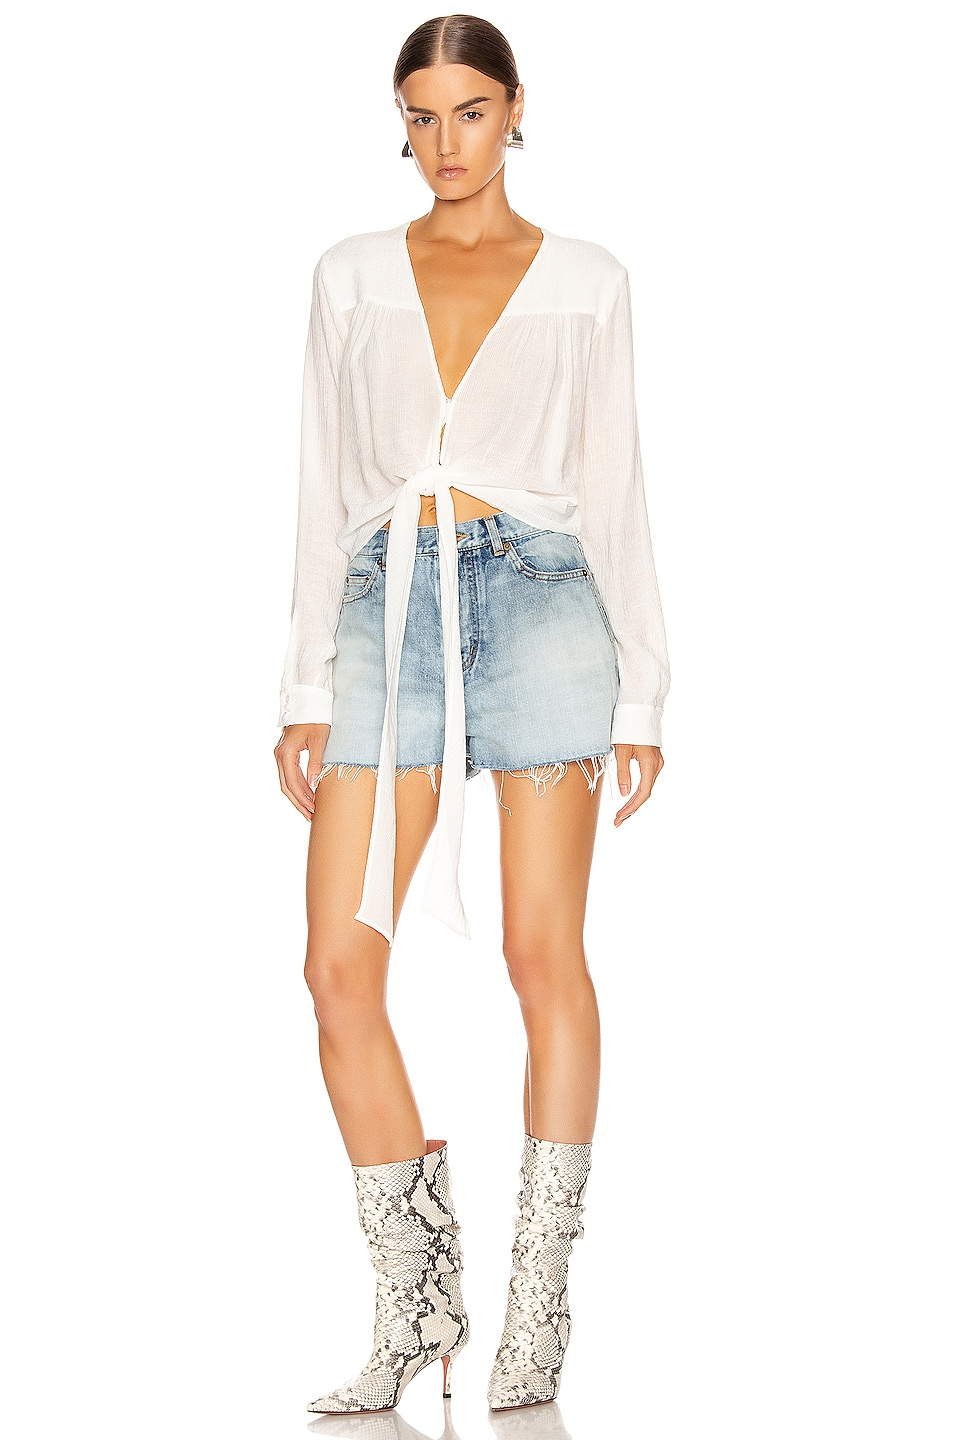 Image 1 of The Range Vapor Voile Tied Up Long Sleeve Top in Off White